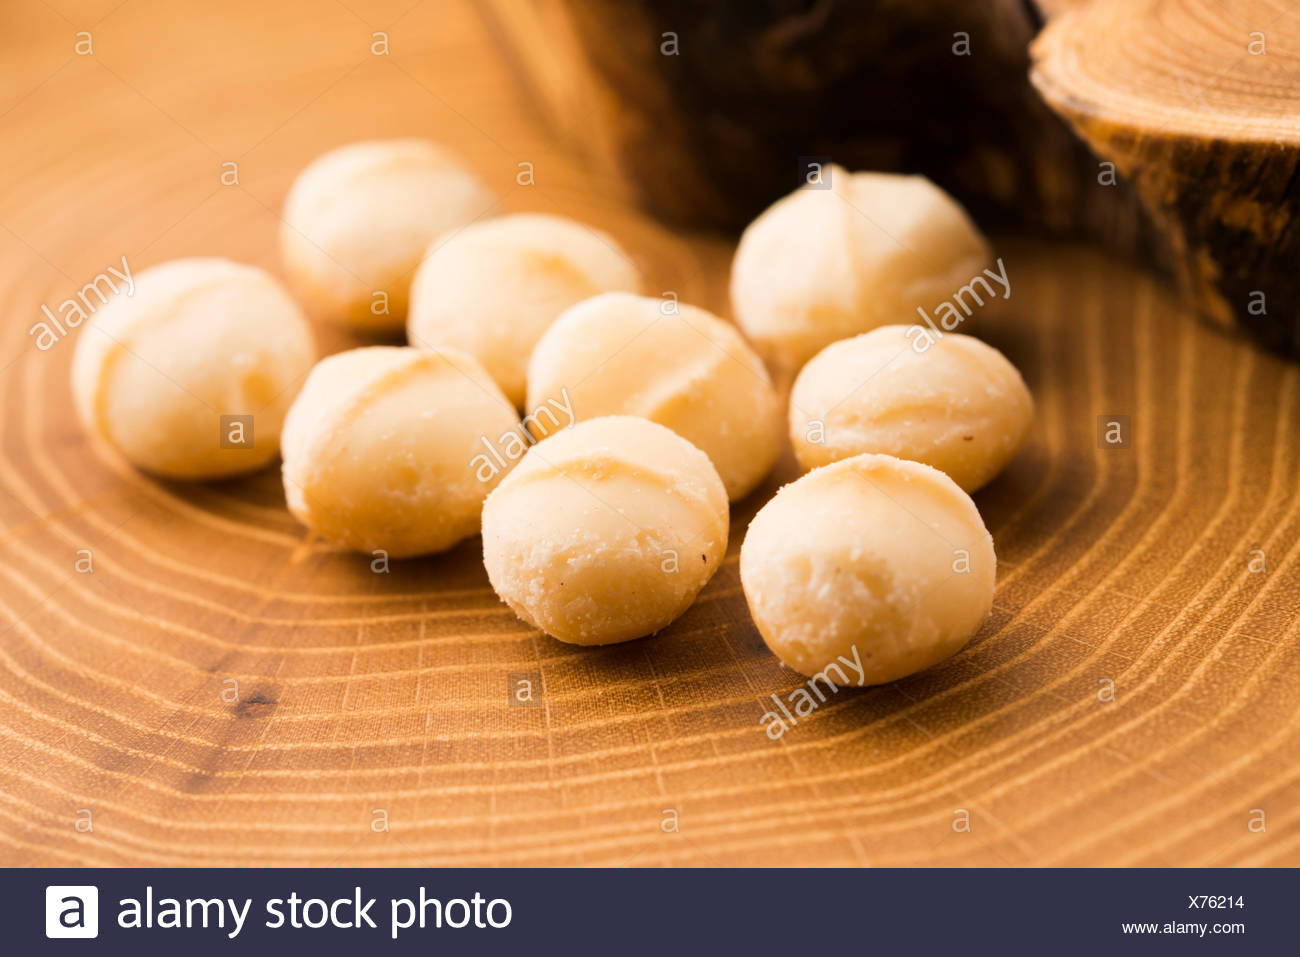 Roasted Macadamia nuts on rustic wooden background - Stock Image